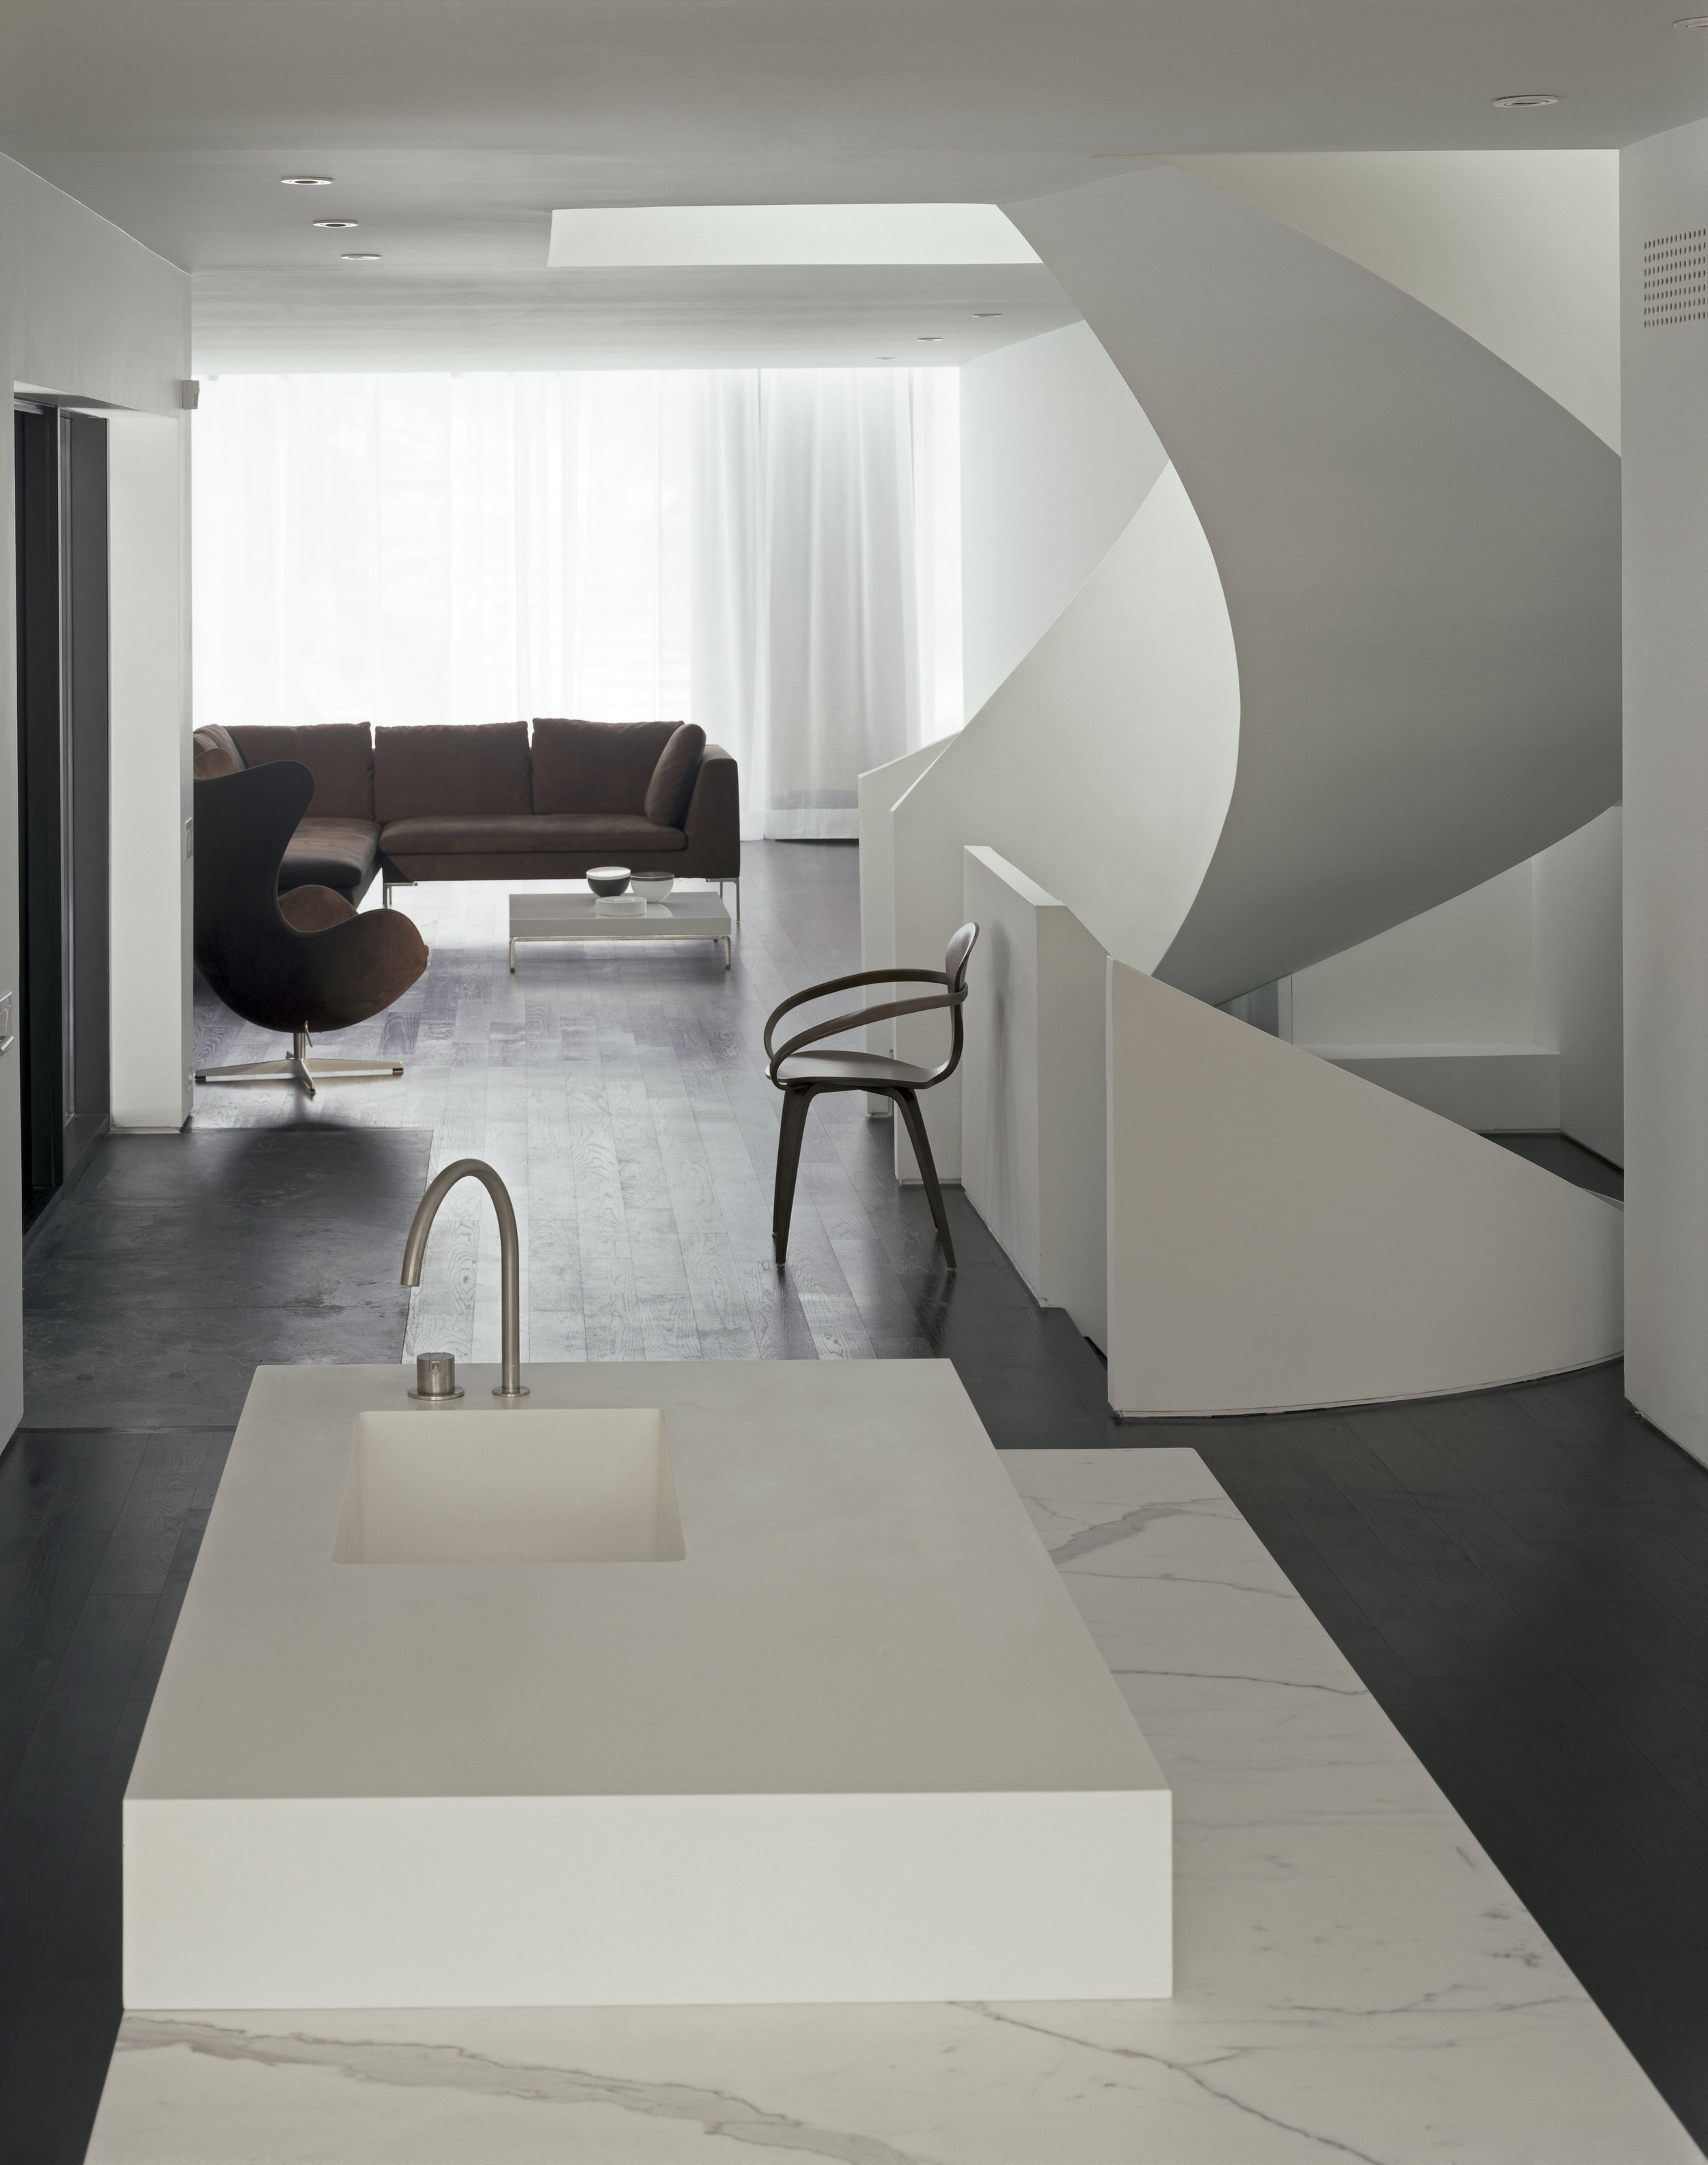 Copy of Russell Hill Road - Kitchen Stair white curve living room couch